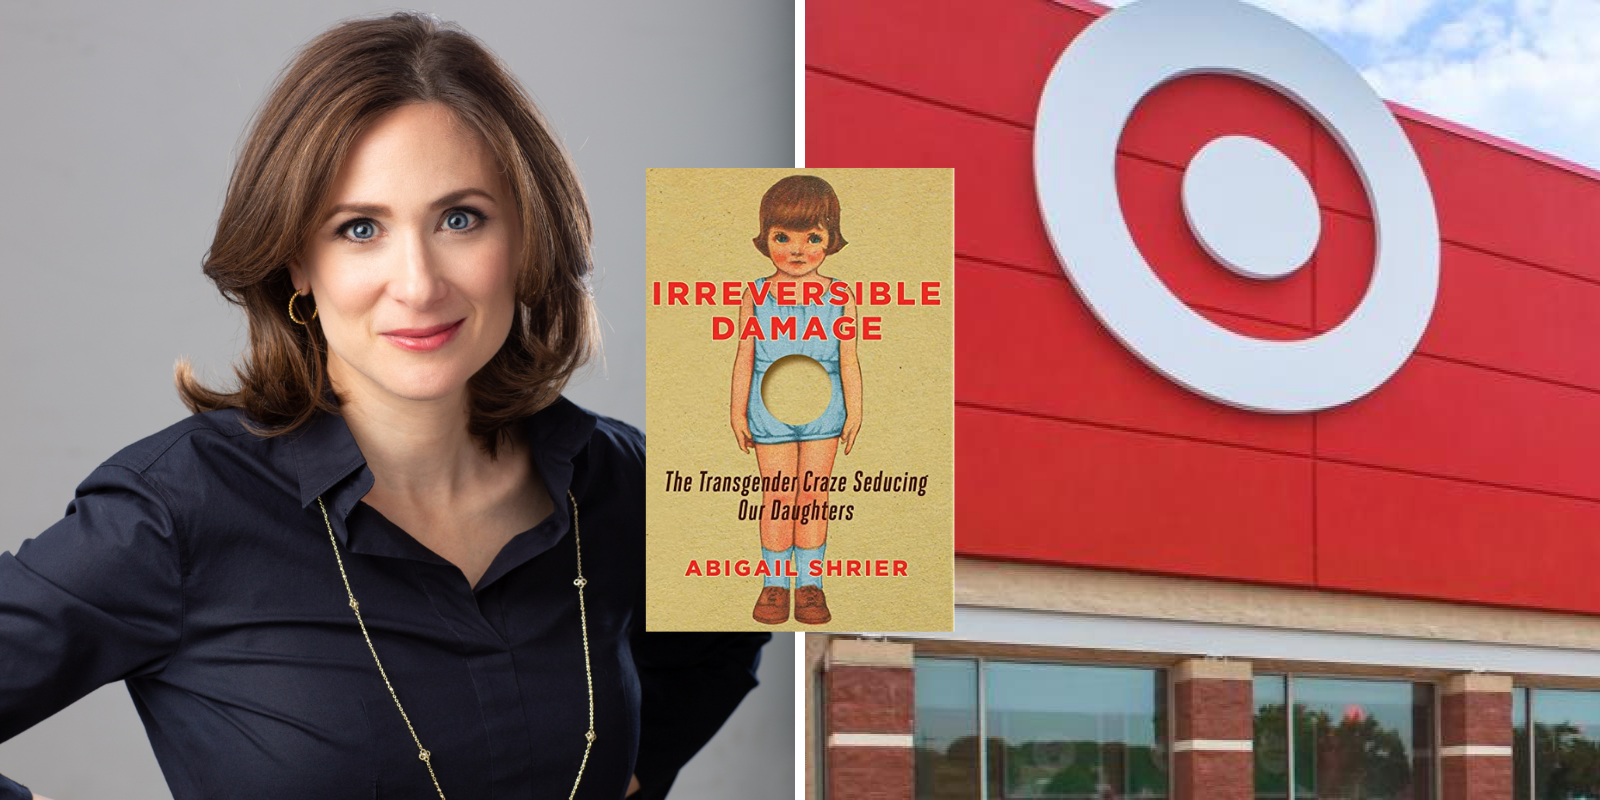 Target bans book after complaints from random accounts on Twitter